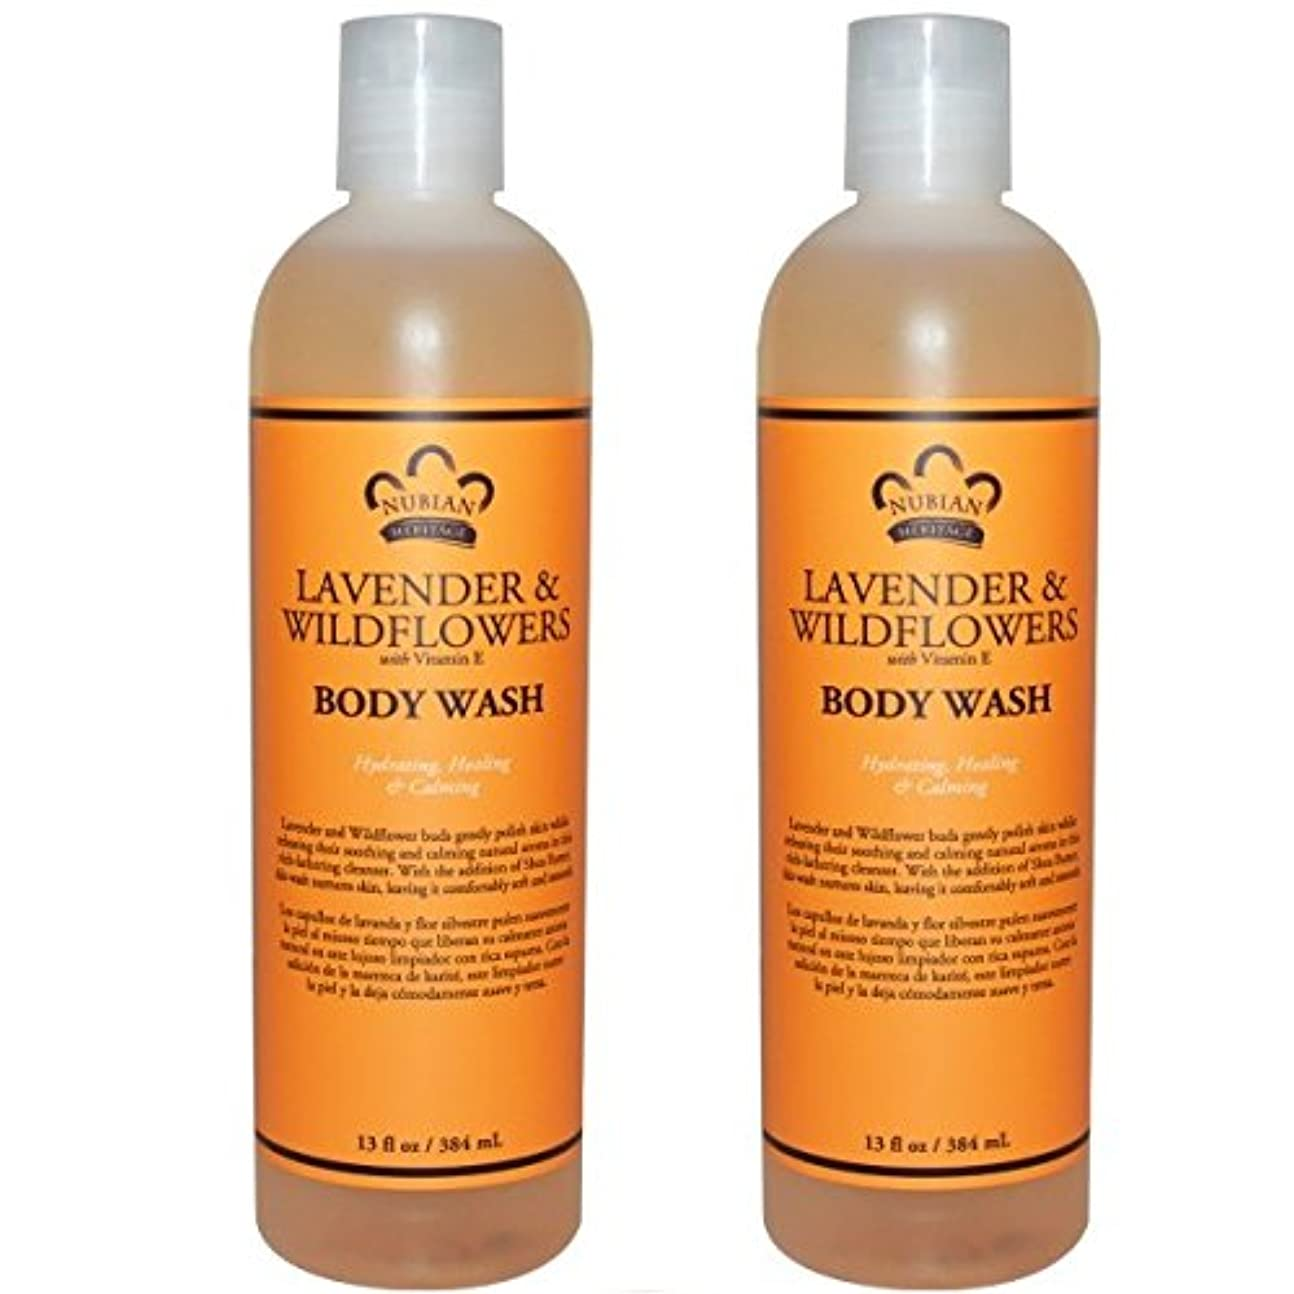 基礎理論構造的私たちの【海外直送品】【2本】Nubian Heritage Body Wash Relaxing & Nourishing, Lavender & Wildflowers - 13 fl oz (384 ml)